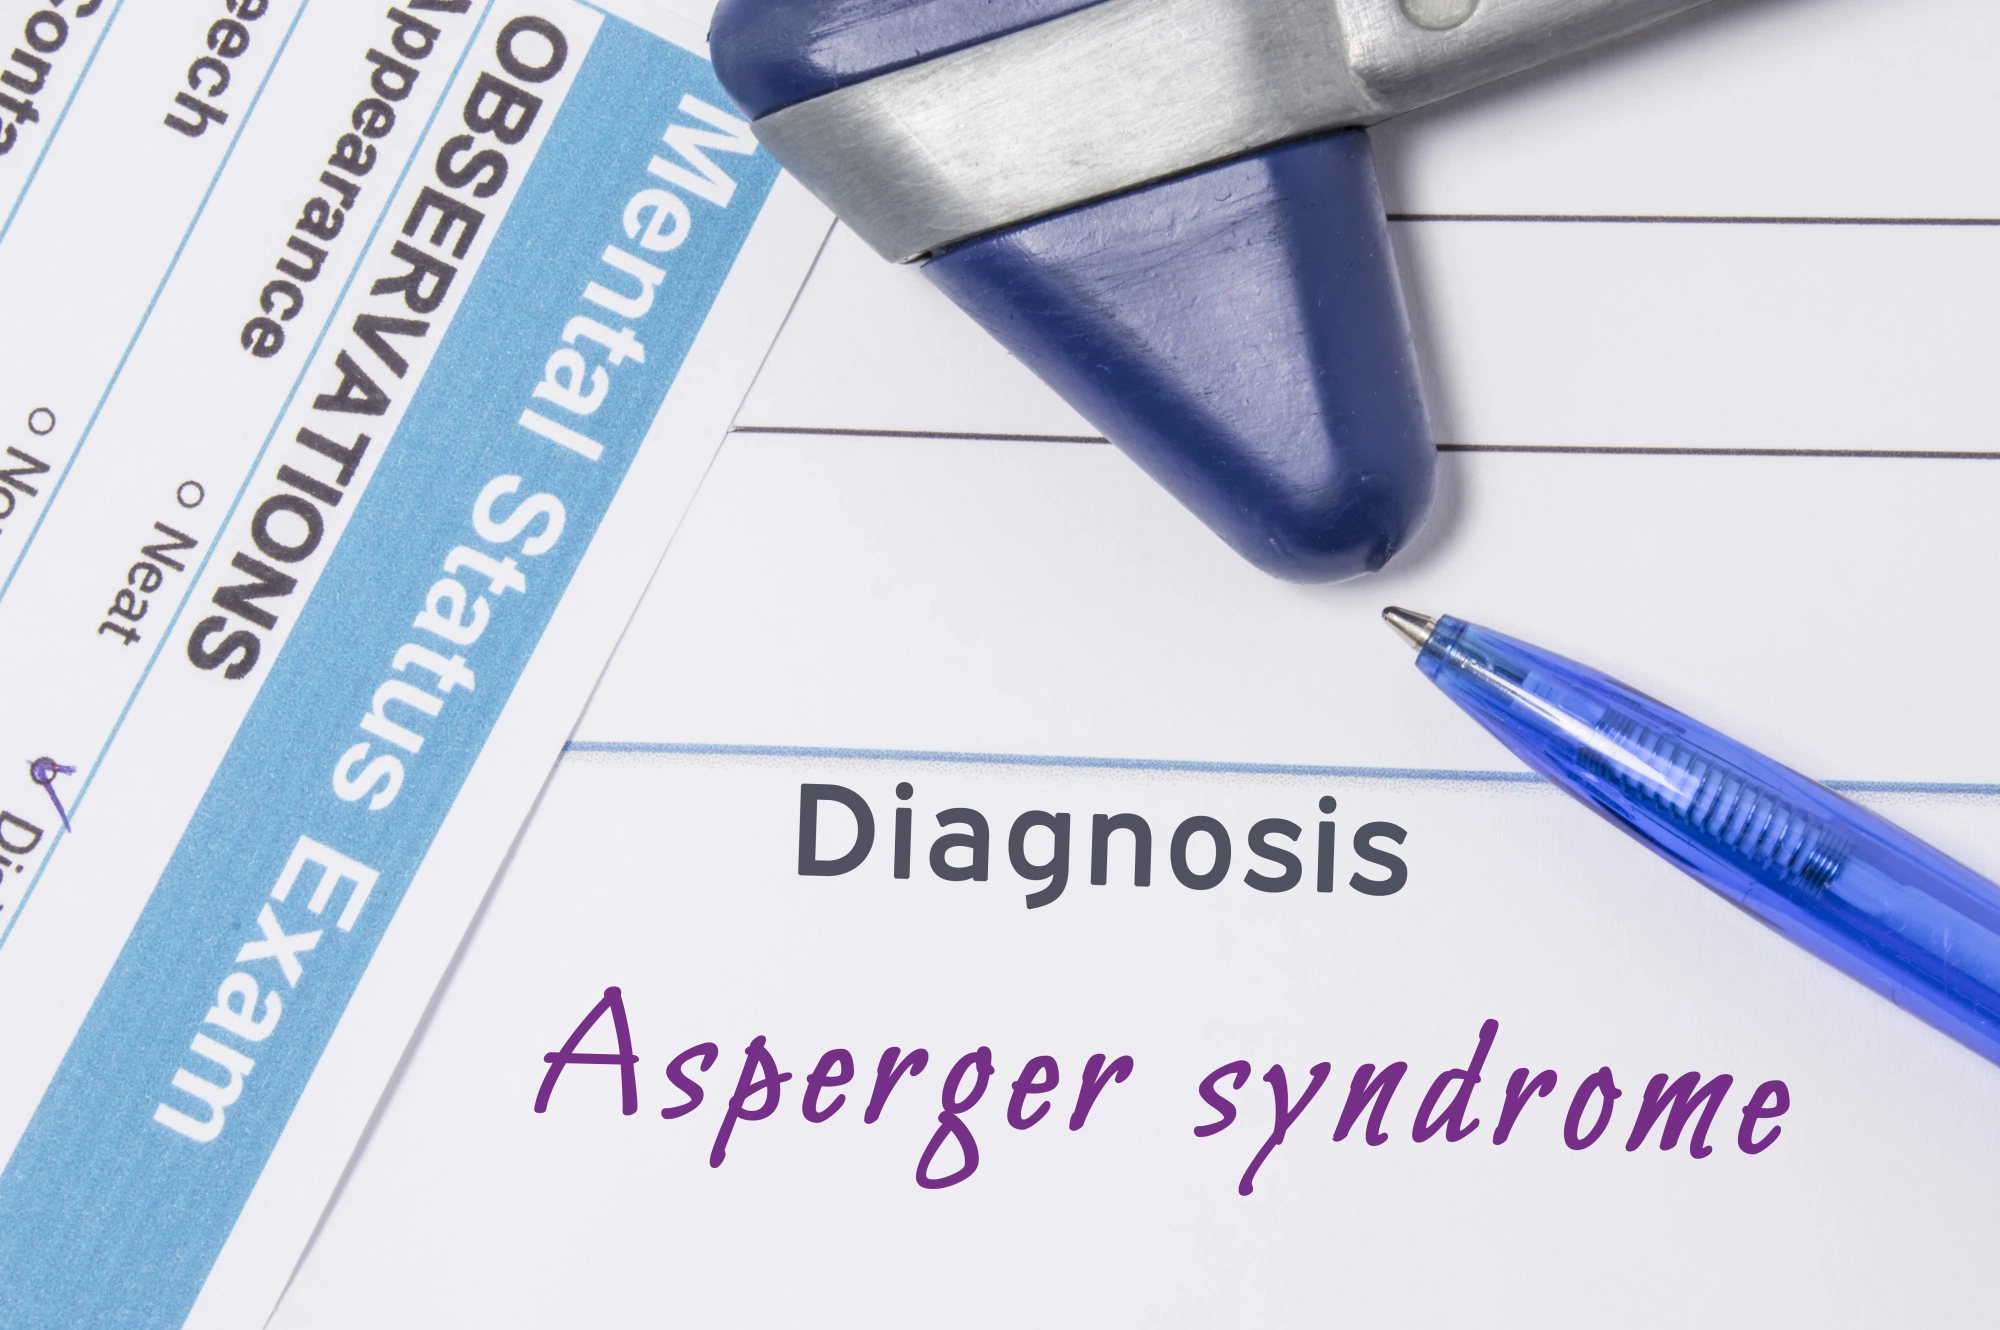 What Other Conditions Are Related To Asperger Syndrome